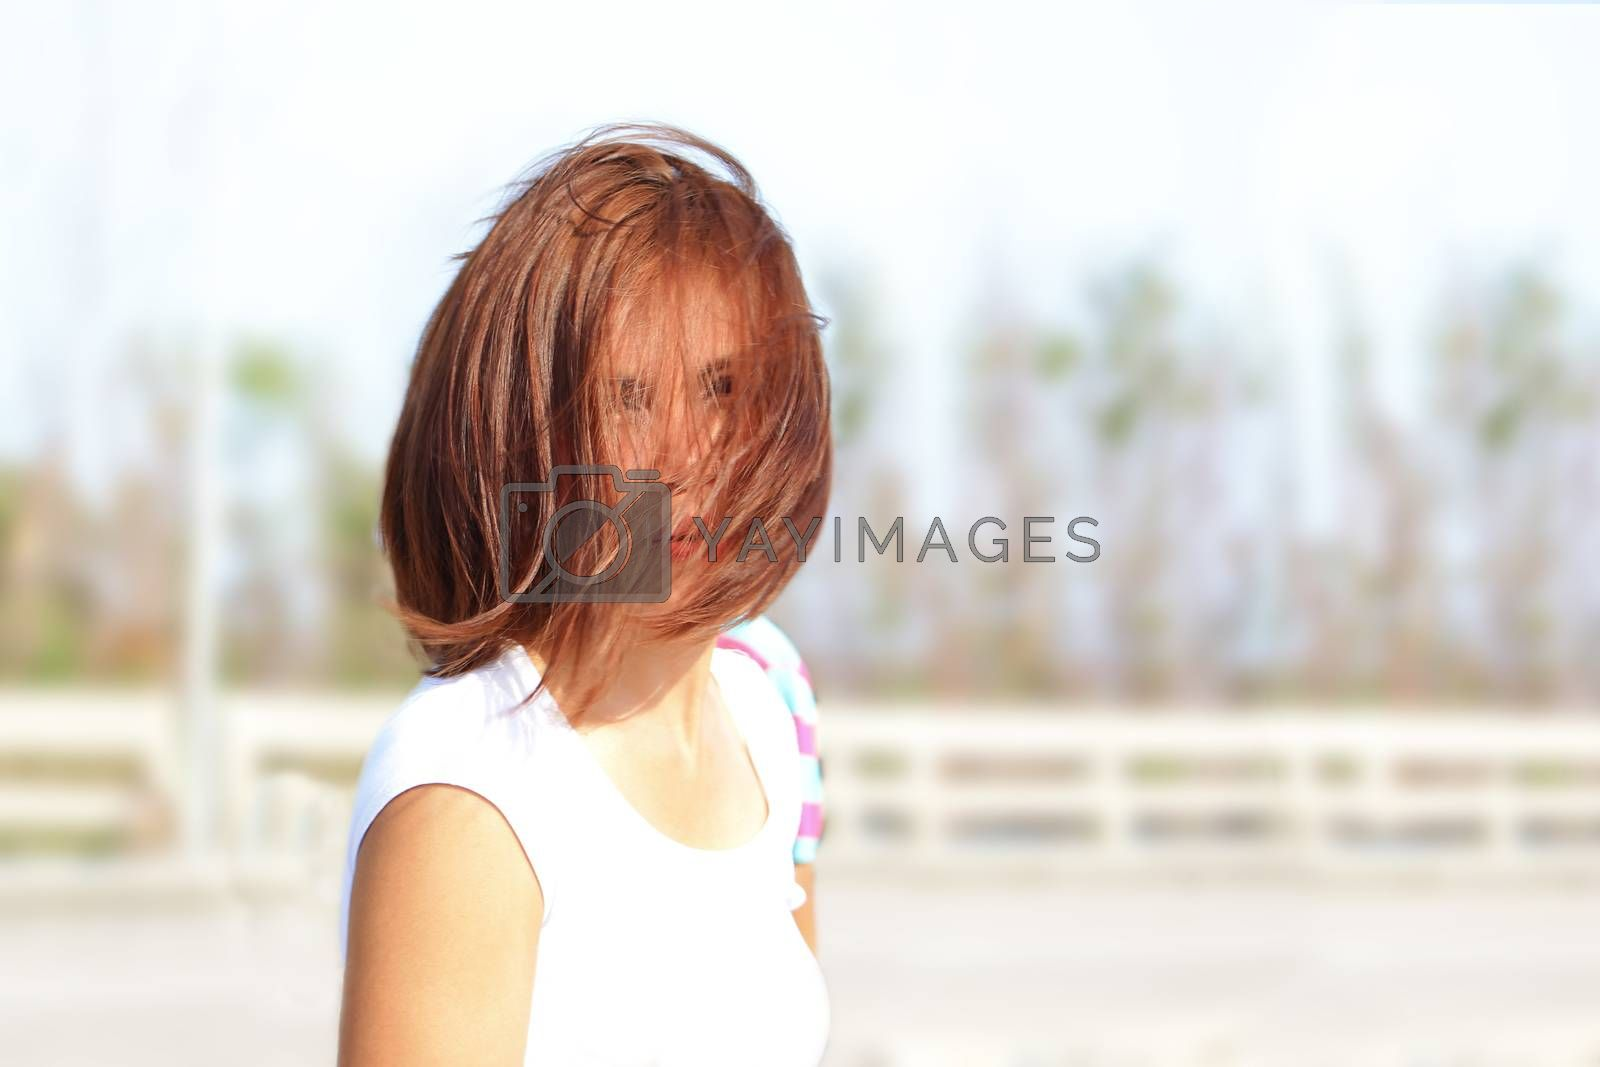 Lady with her hairstyle and hair cover her face